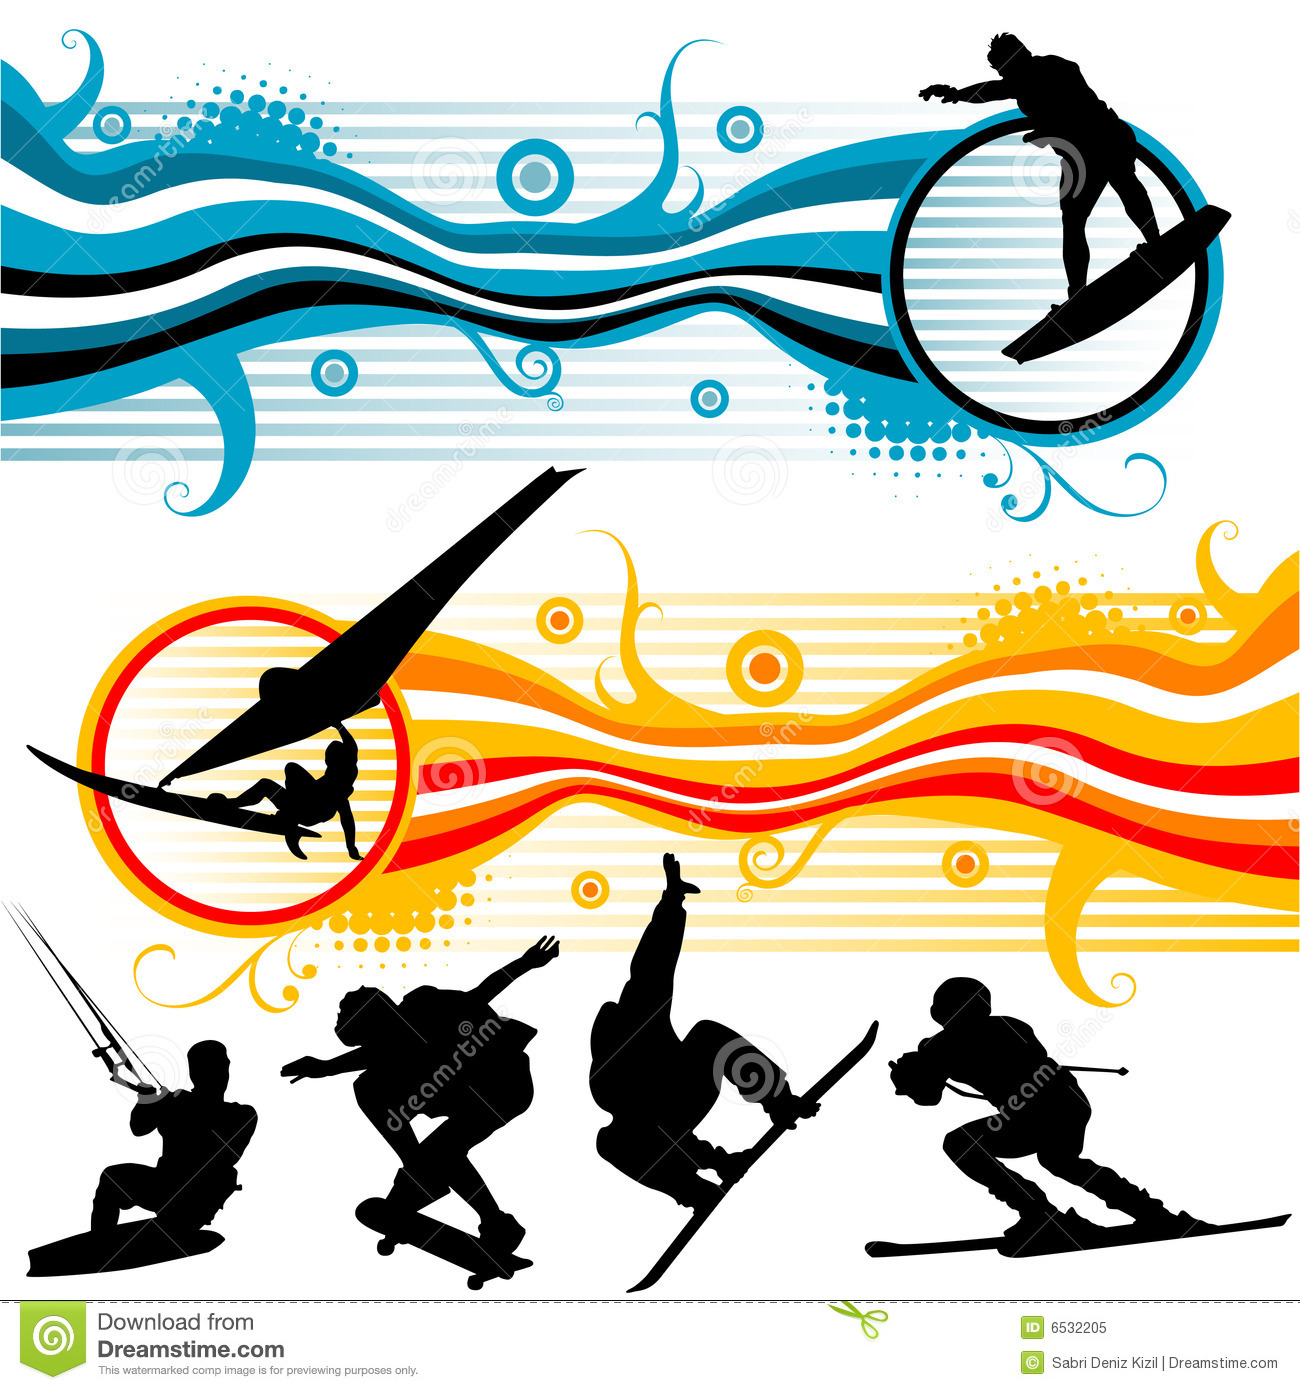 Extreme sport clipart #8